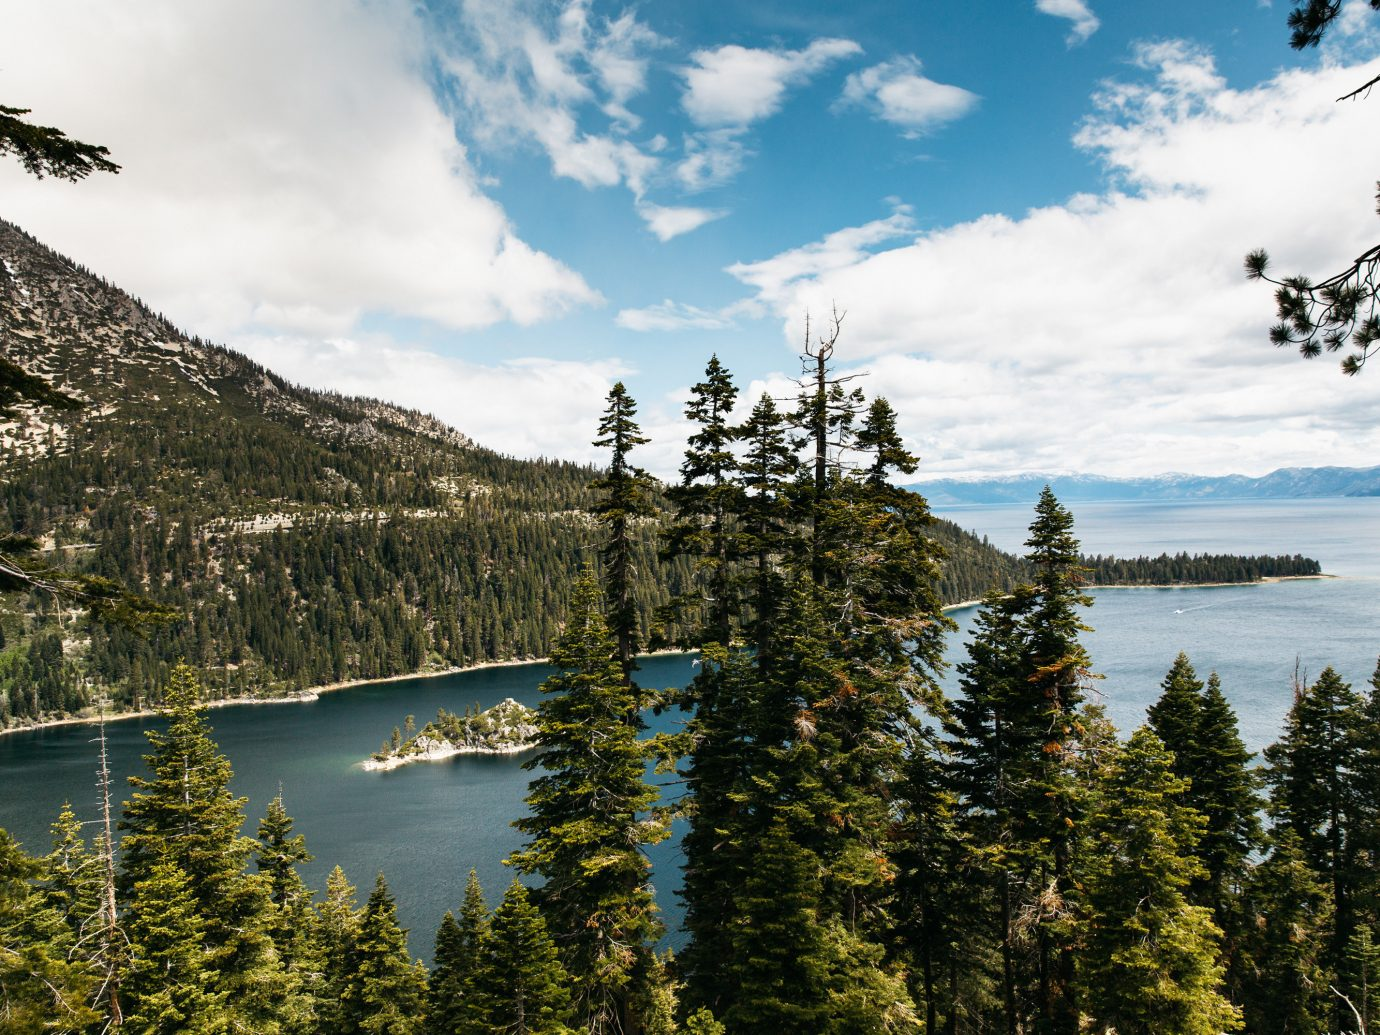 Hotels Style + Design Trip Ideas tree outdoor sky Nature wilderness Lake water reflection mountain cloud mount scenery pond national park biome terrain landscape conifer crater lake pine family reservoir mountain range plant Forest elevation pine wooded hillside surrounded